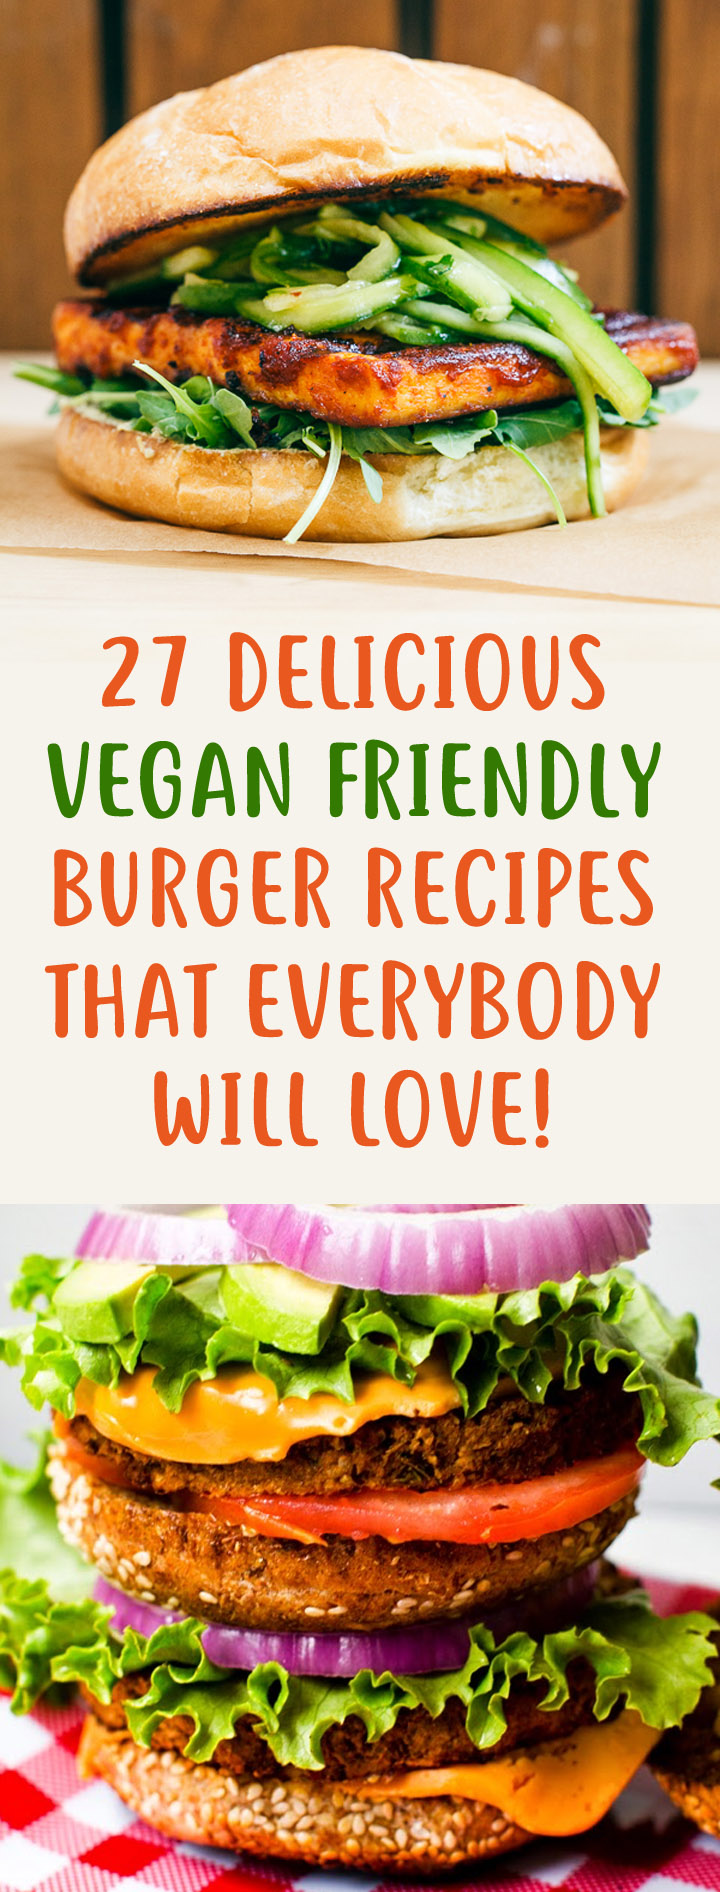 27 Vegan Burger Weight Loss Recipes That You Yes You Need To Try Trimmedandtoned